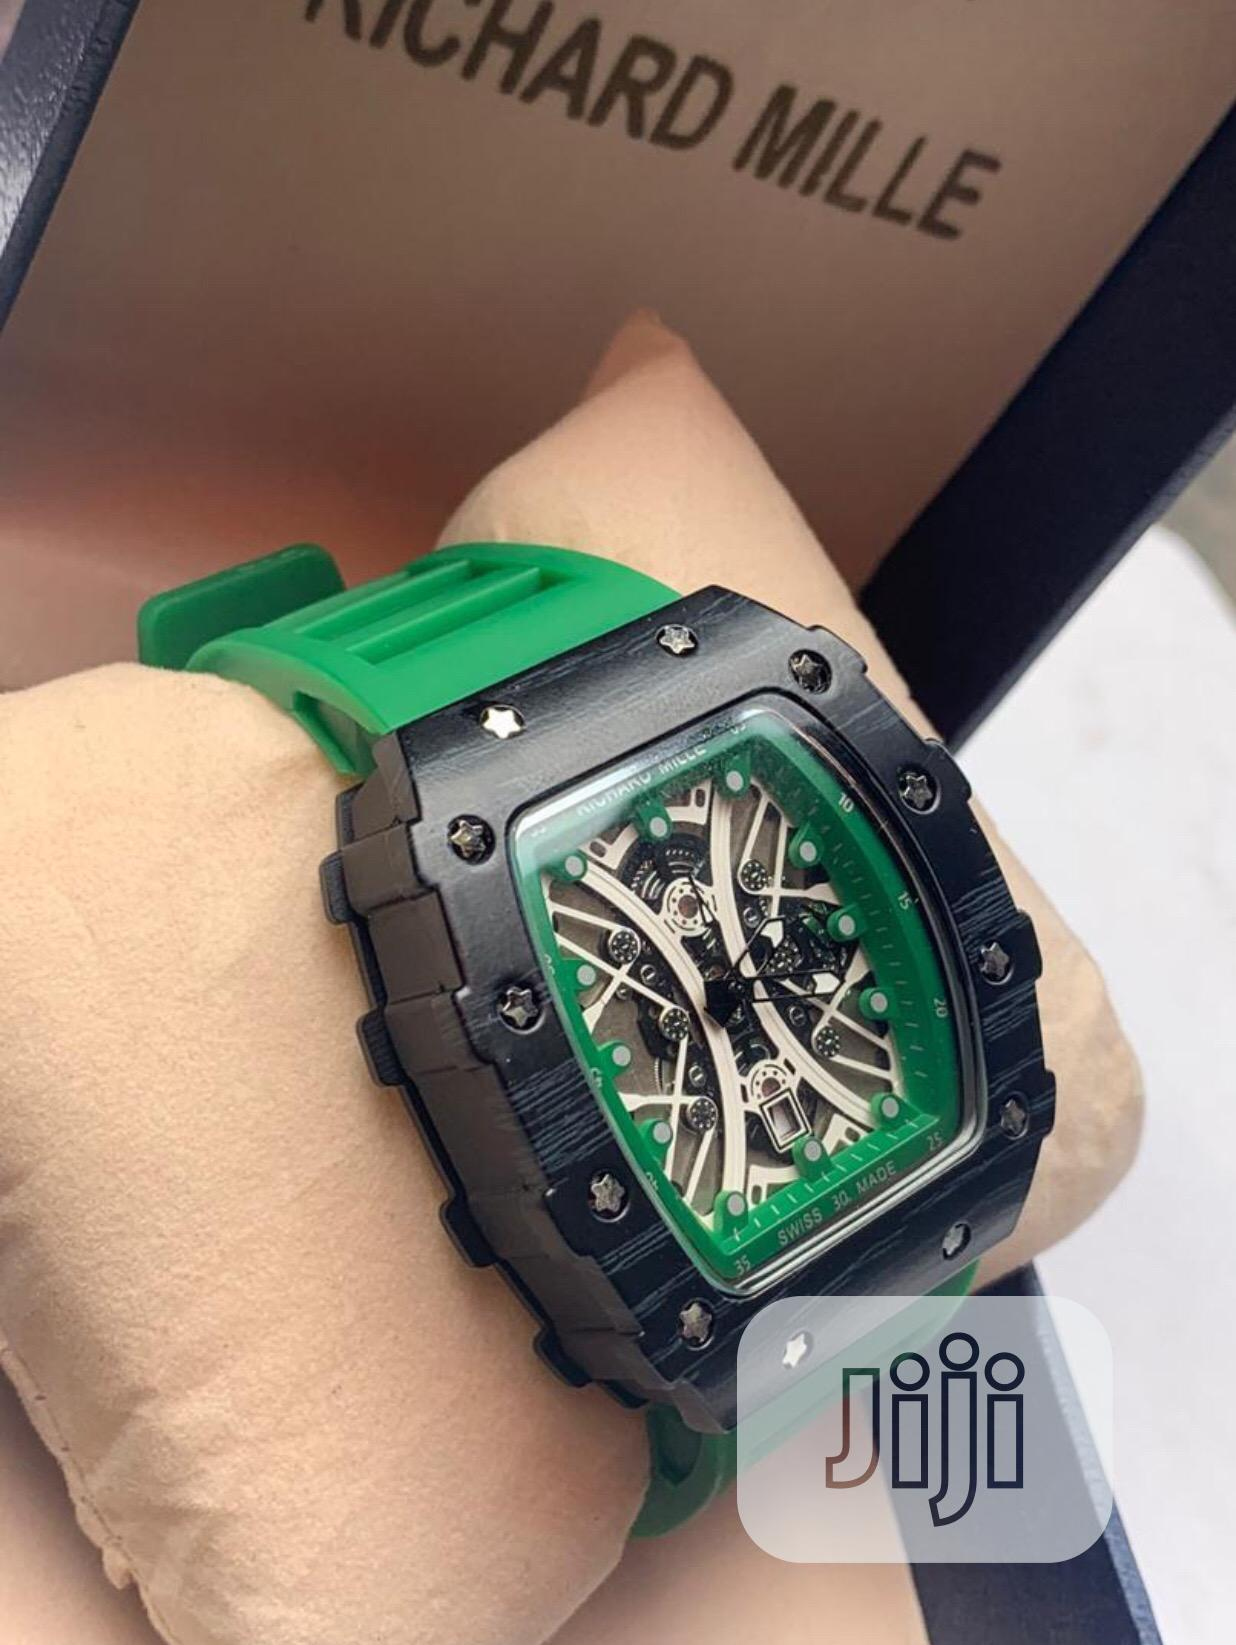 Richard Mille Green Color Band Mechanical Watch